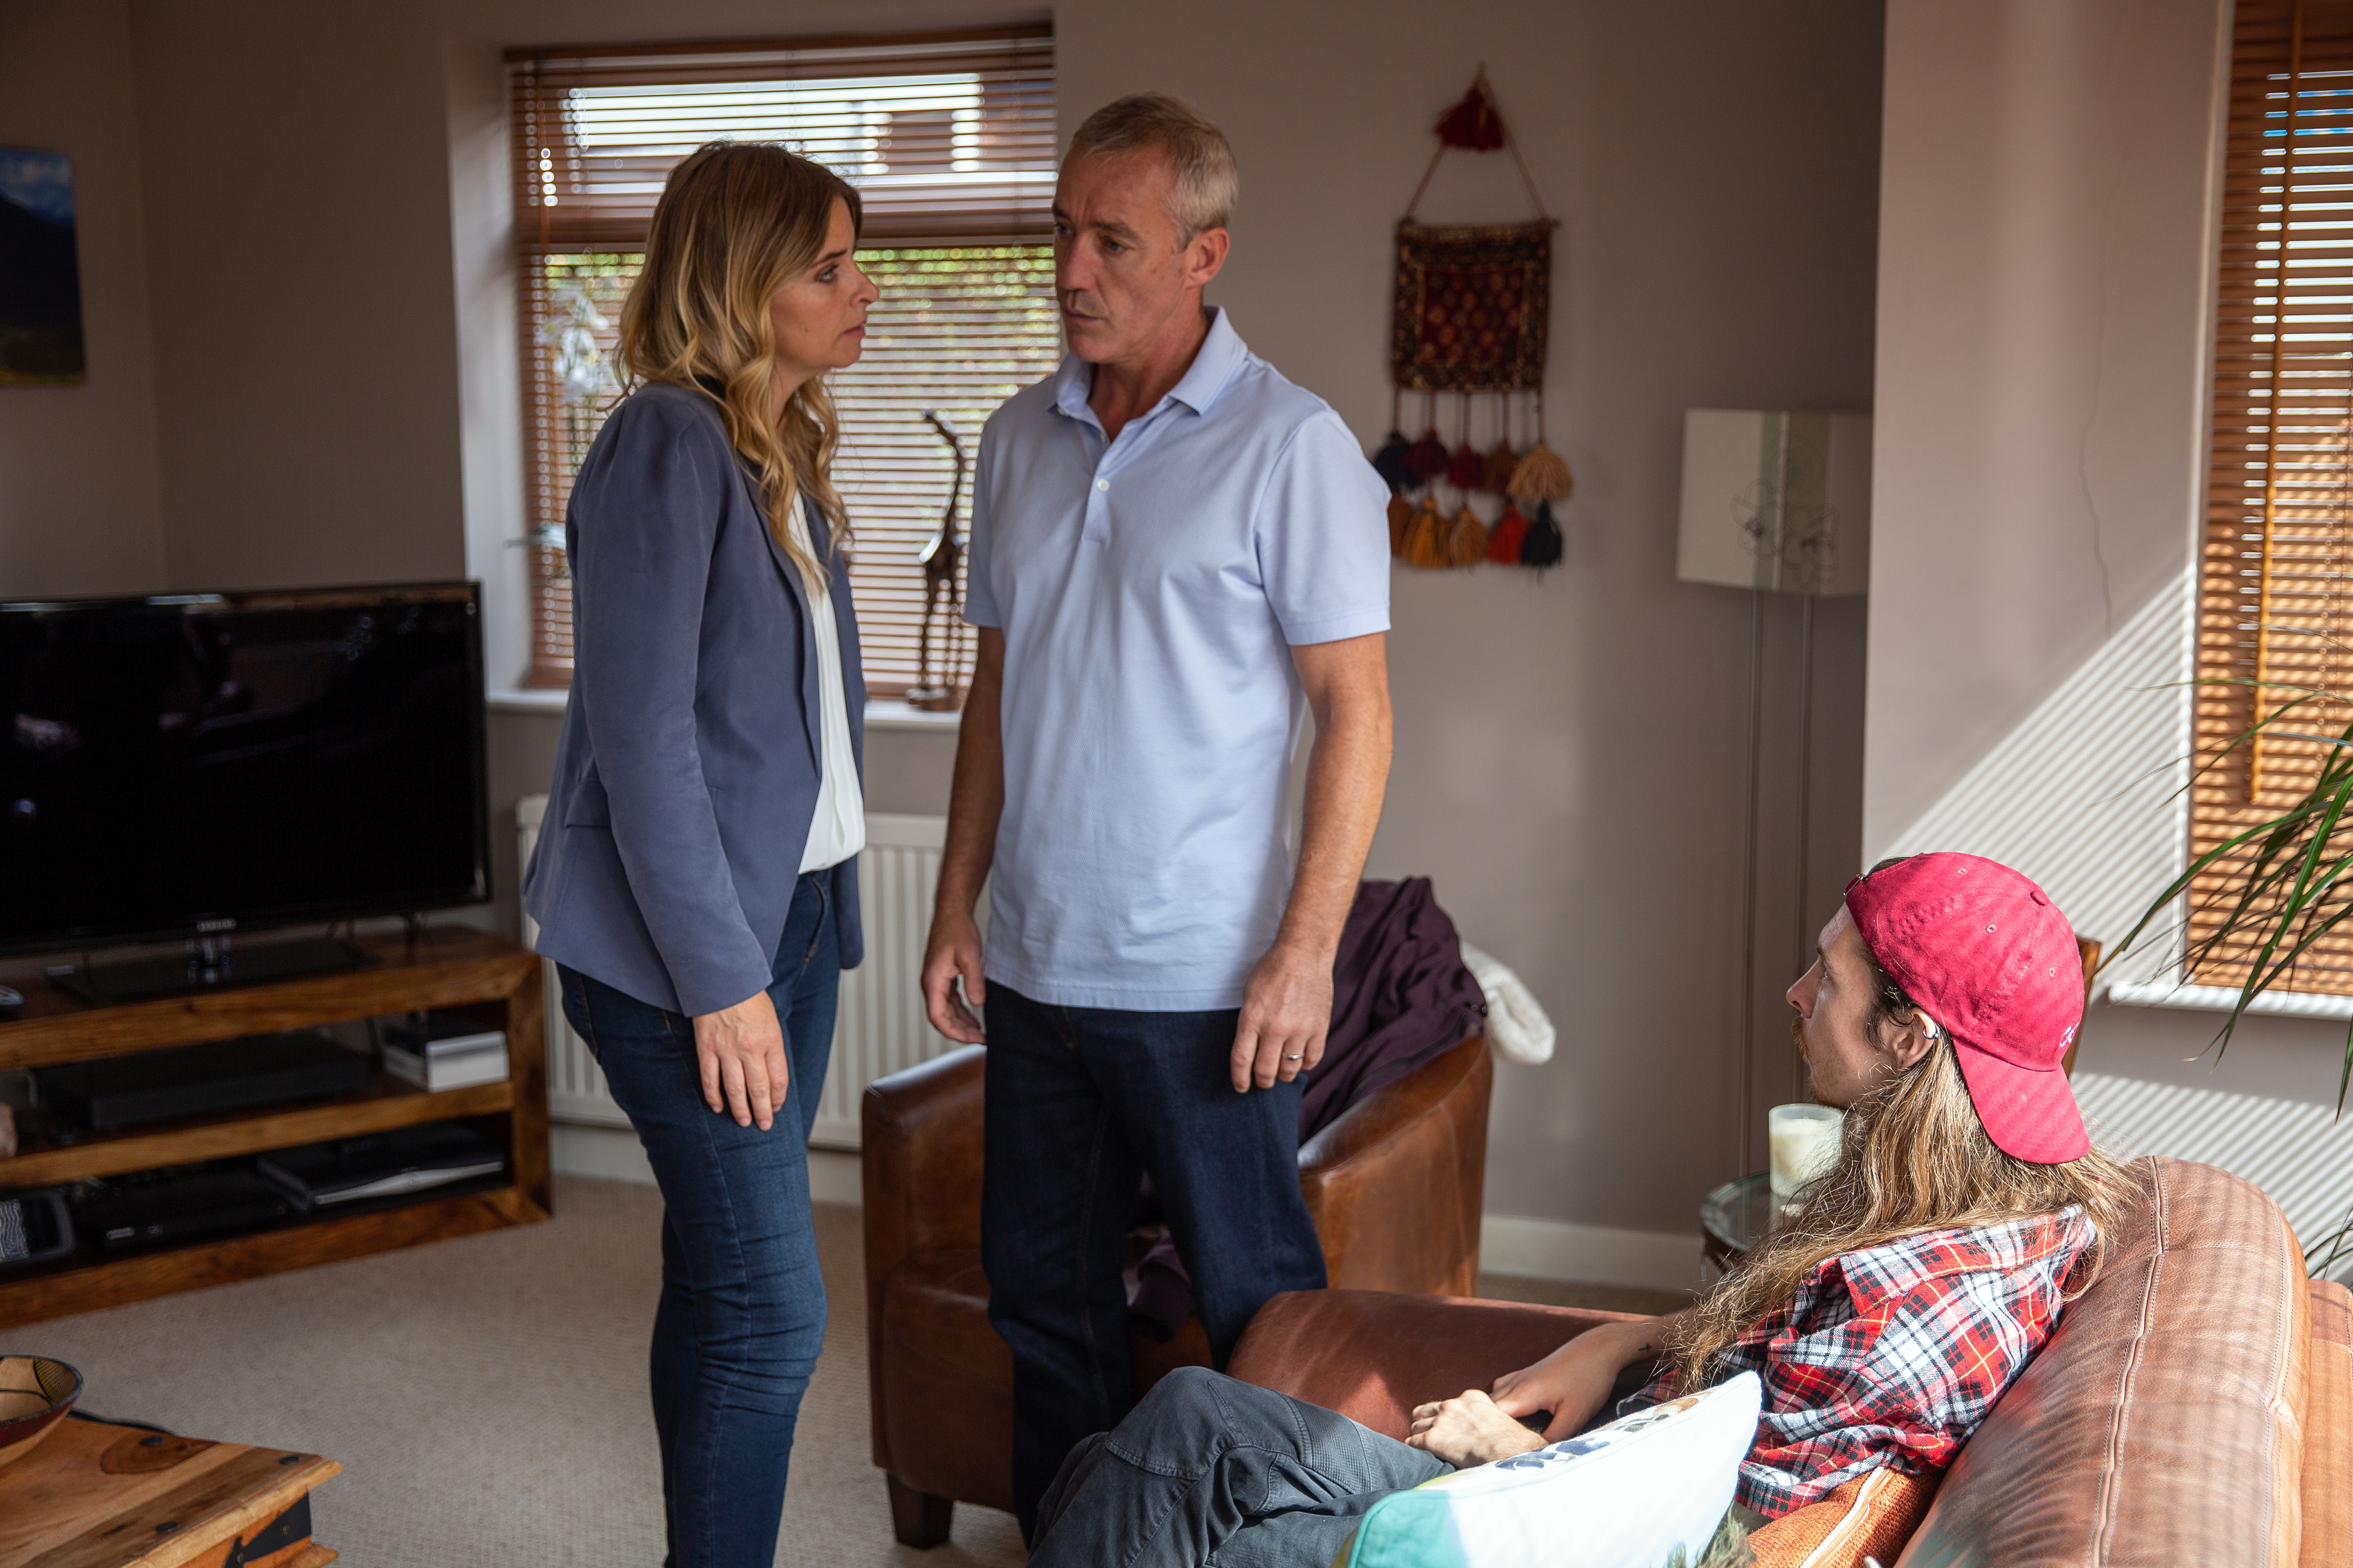 CHarity confronts Bails in Emmerdale